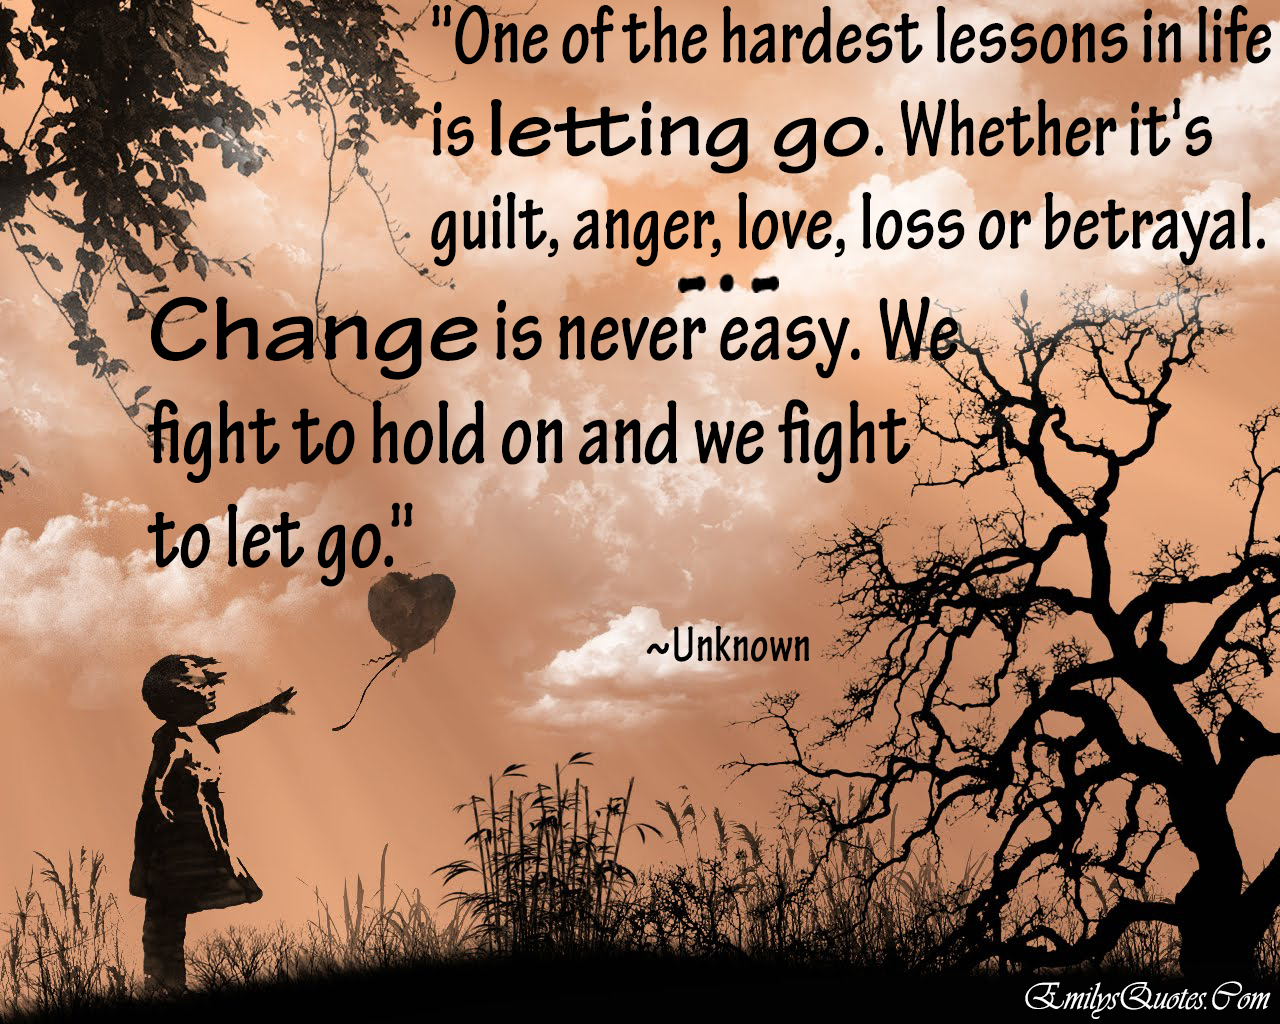 EmilysQuotes.Com - unknown, learning, life, letting go, guilt, anger, love, loss, betrayal, change, sad